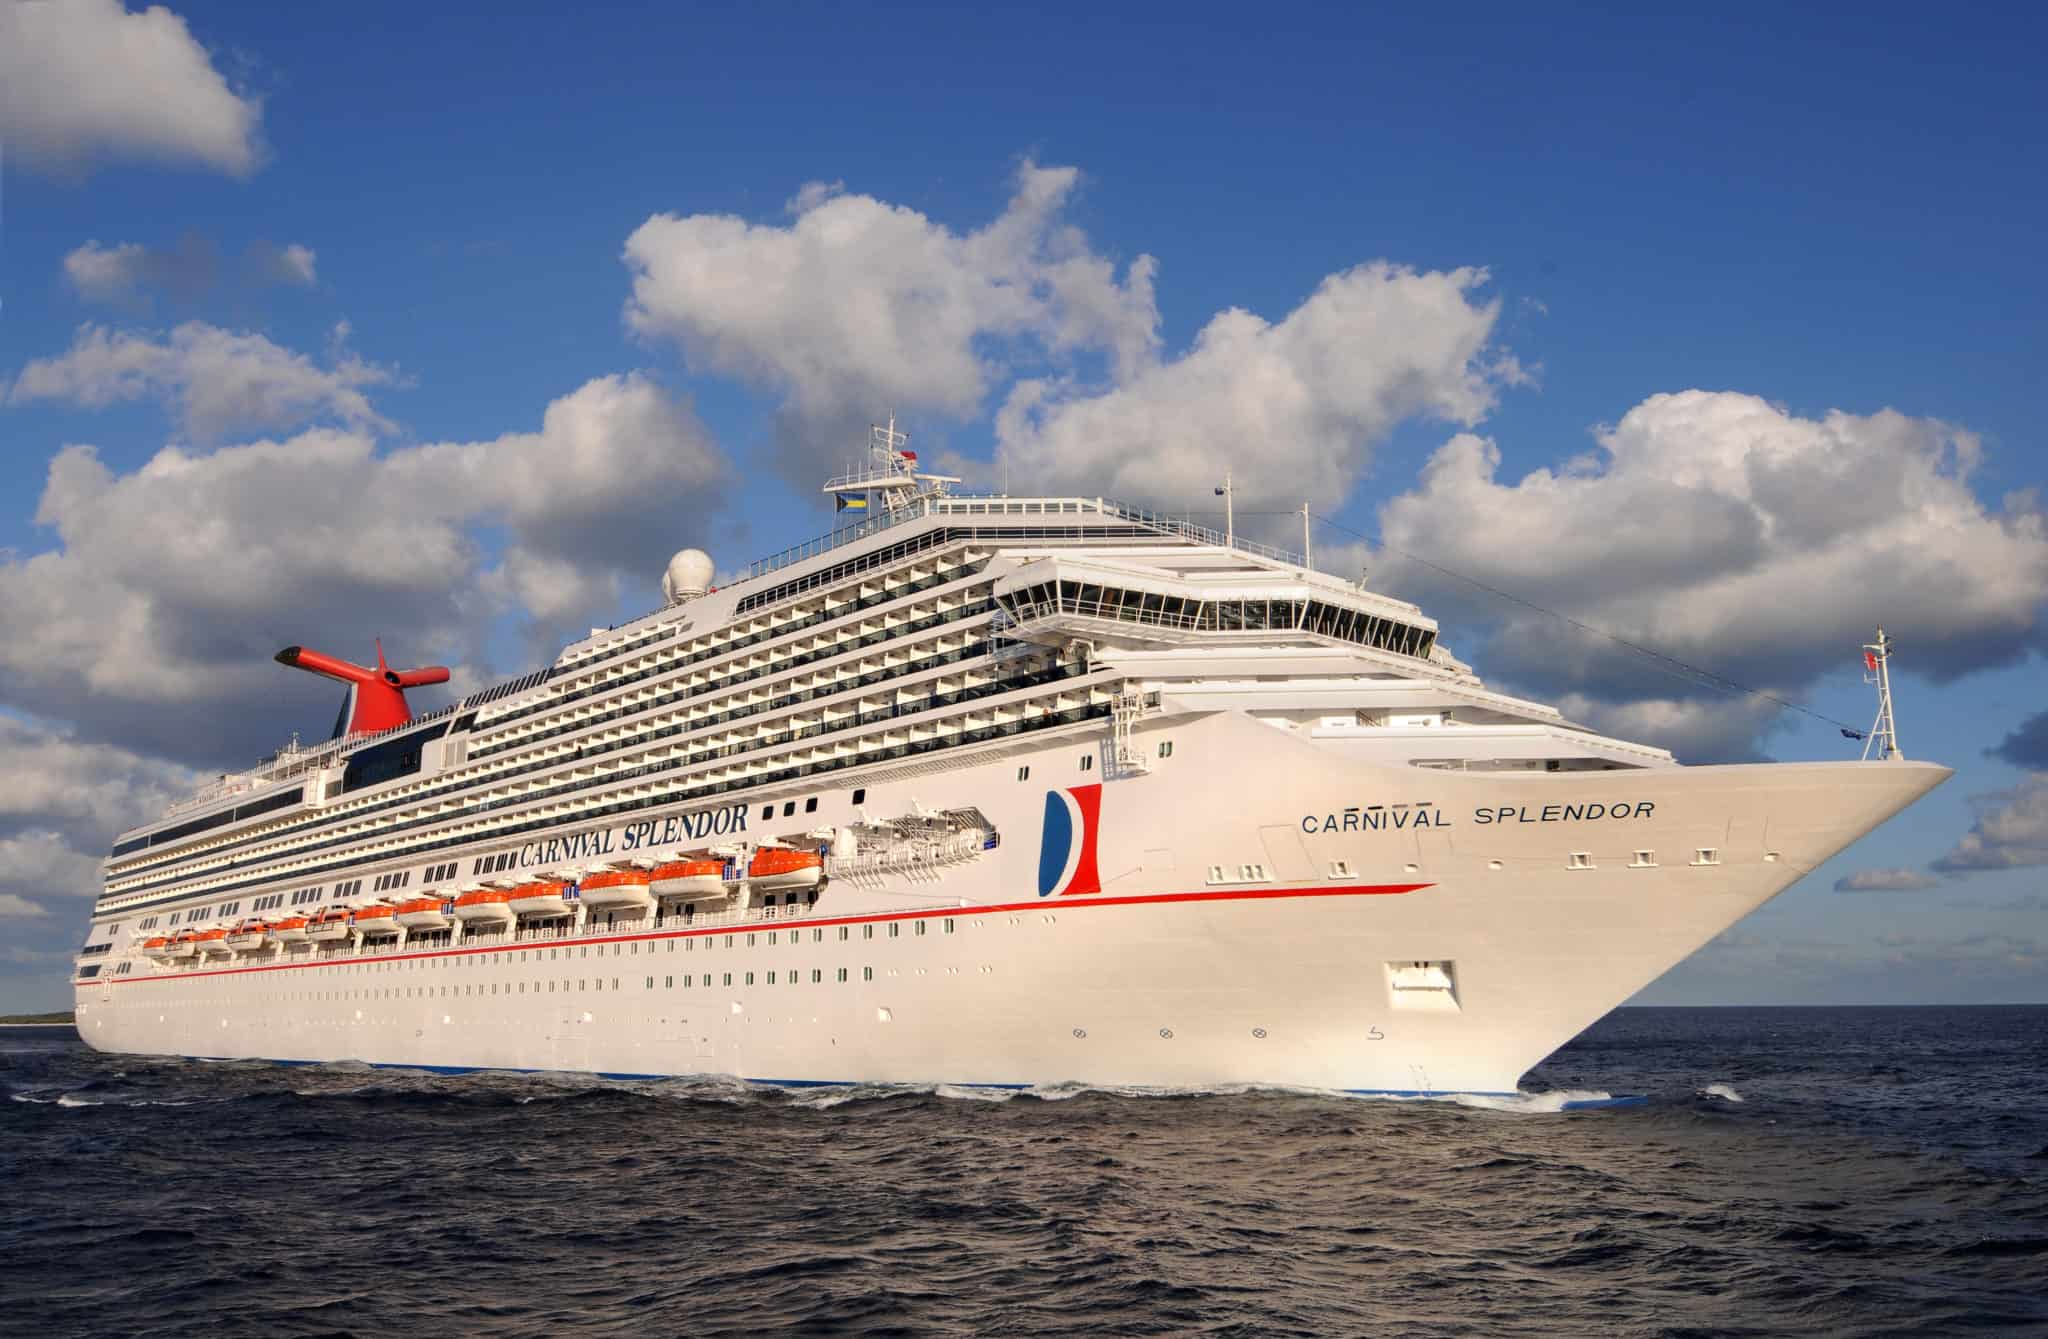 Carnival Splendor To Operate Day Alaska Cruise RoundTrip From - Long beach cruise ship schedule